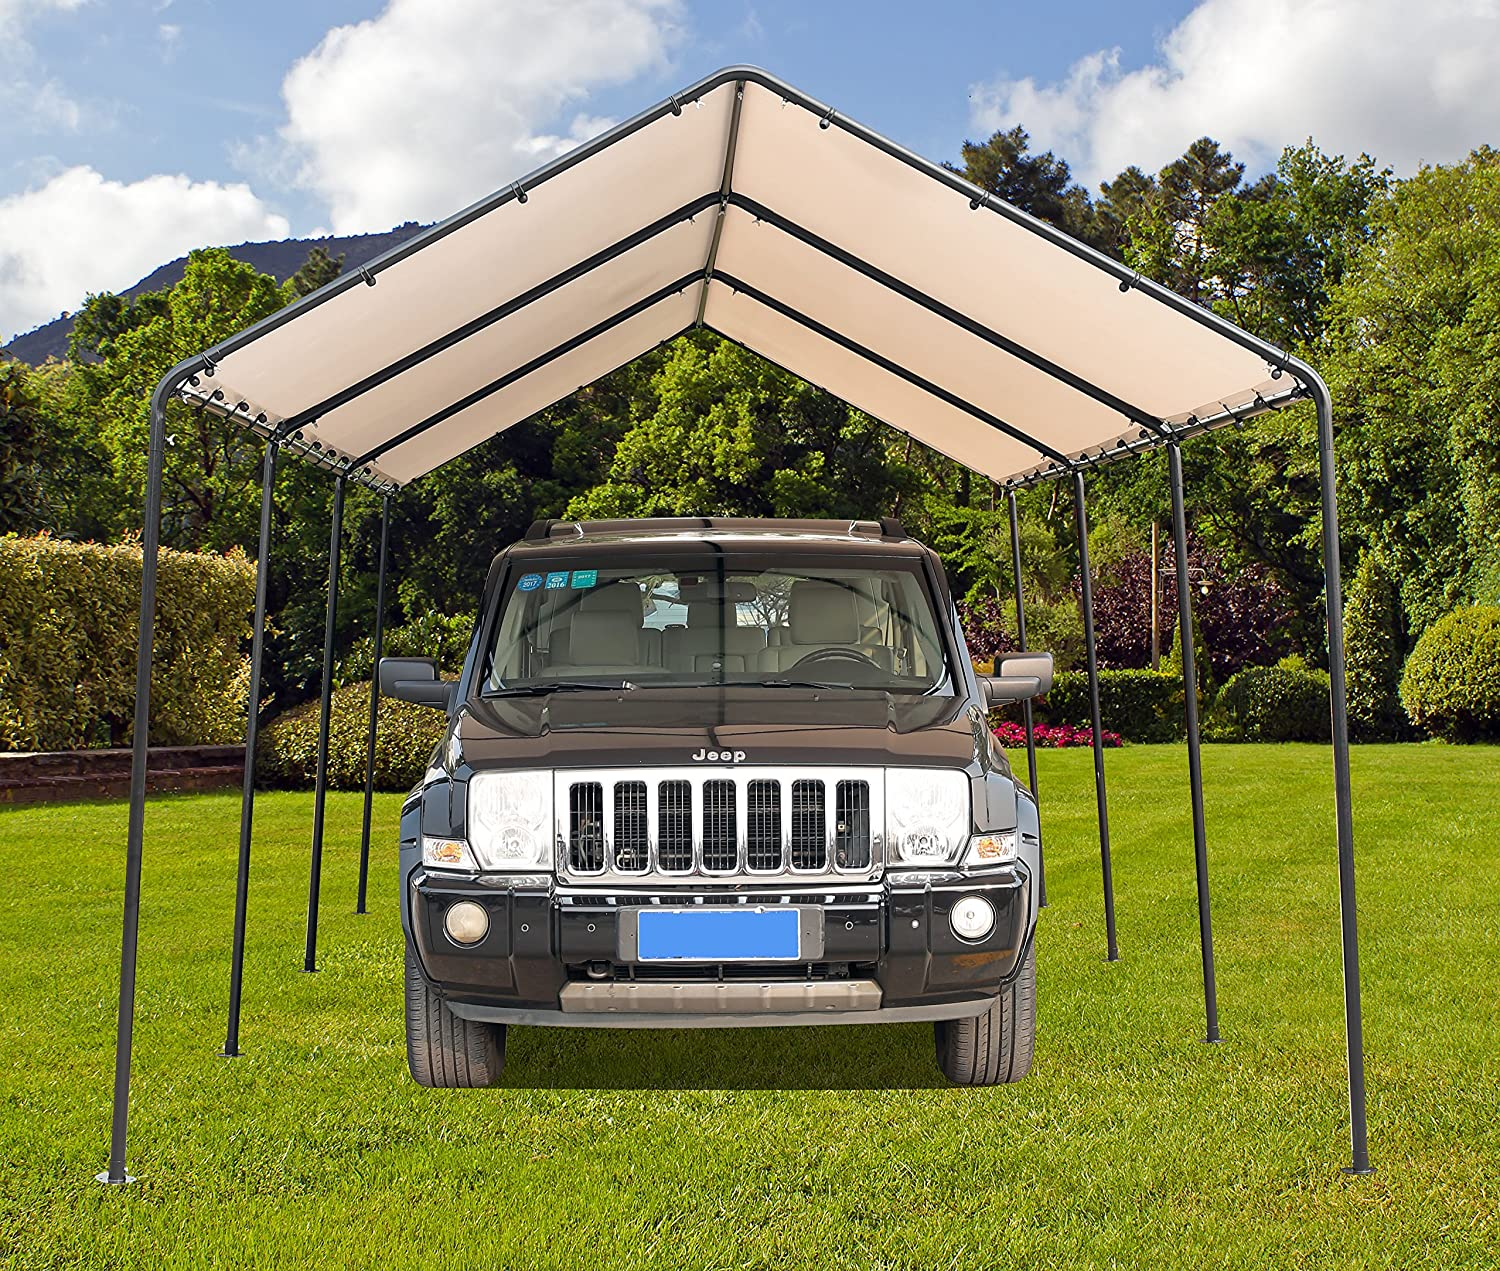 SORARA Carport 10' x 20' Outdoor Car Canopy Gazebo with 8 Steel Legs, White Sorara Outdoor Living USA Inc 818547020593